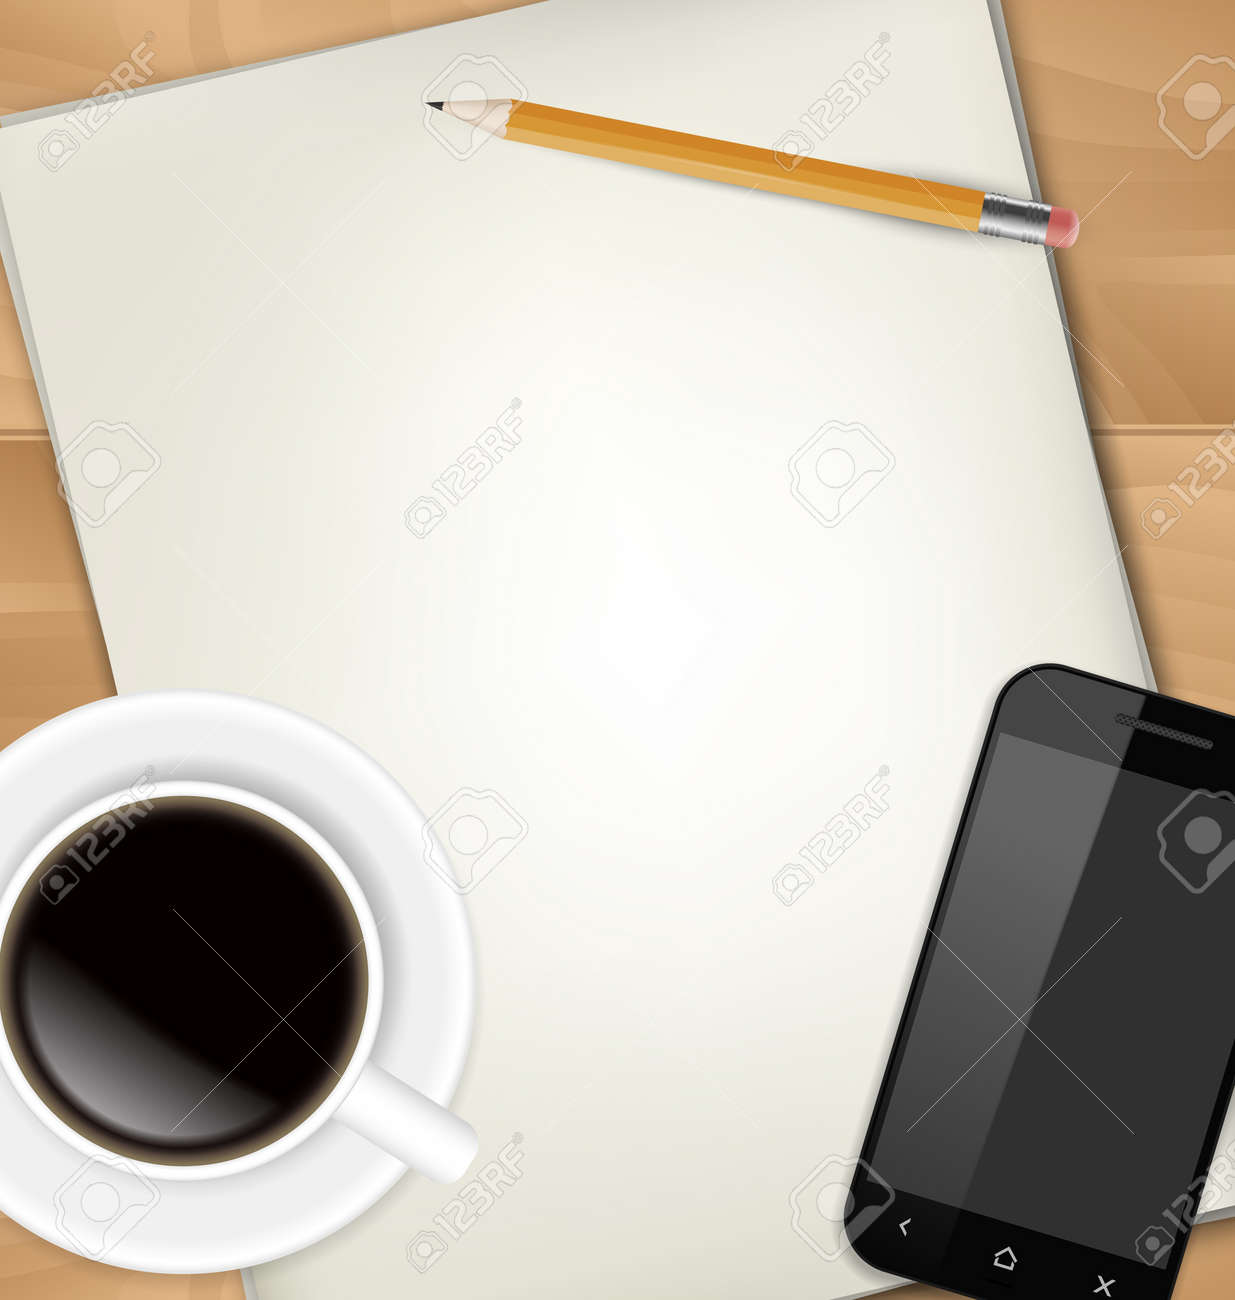 Sheets of paper, pencil, cup of coffee and smartphone on table Stock Photo - 19071174